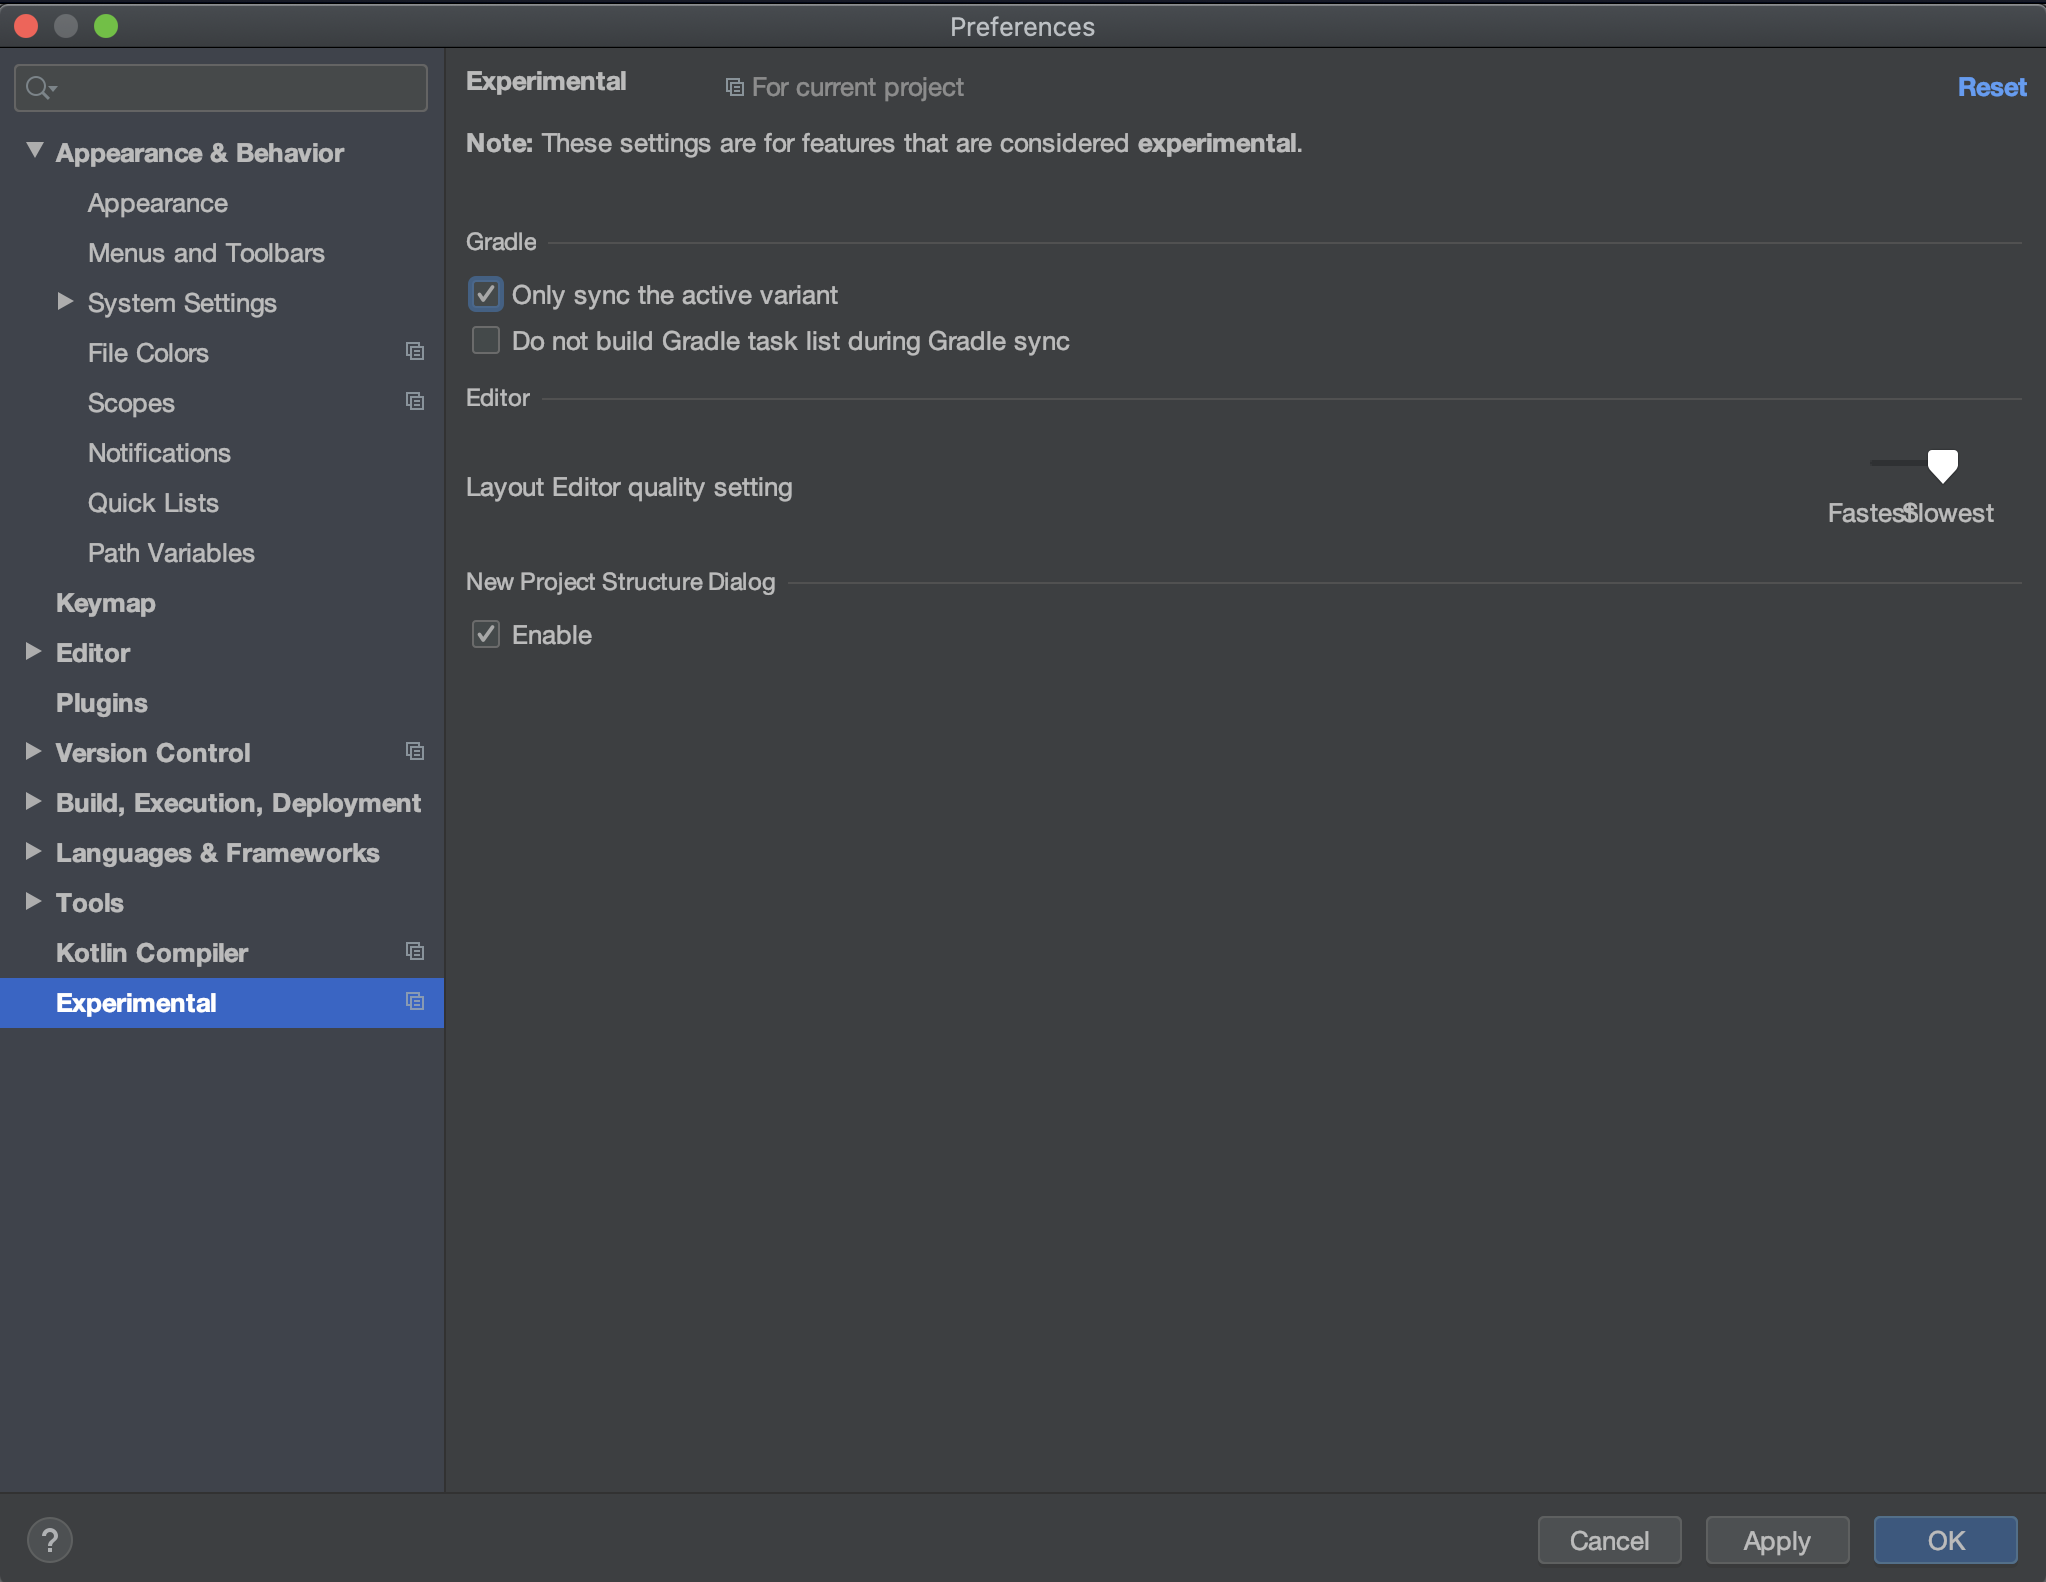 "Android Studio ""Only sync the active variant"" setting from Experimental preference"